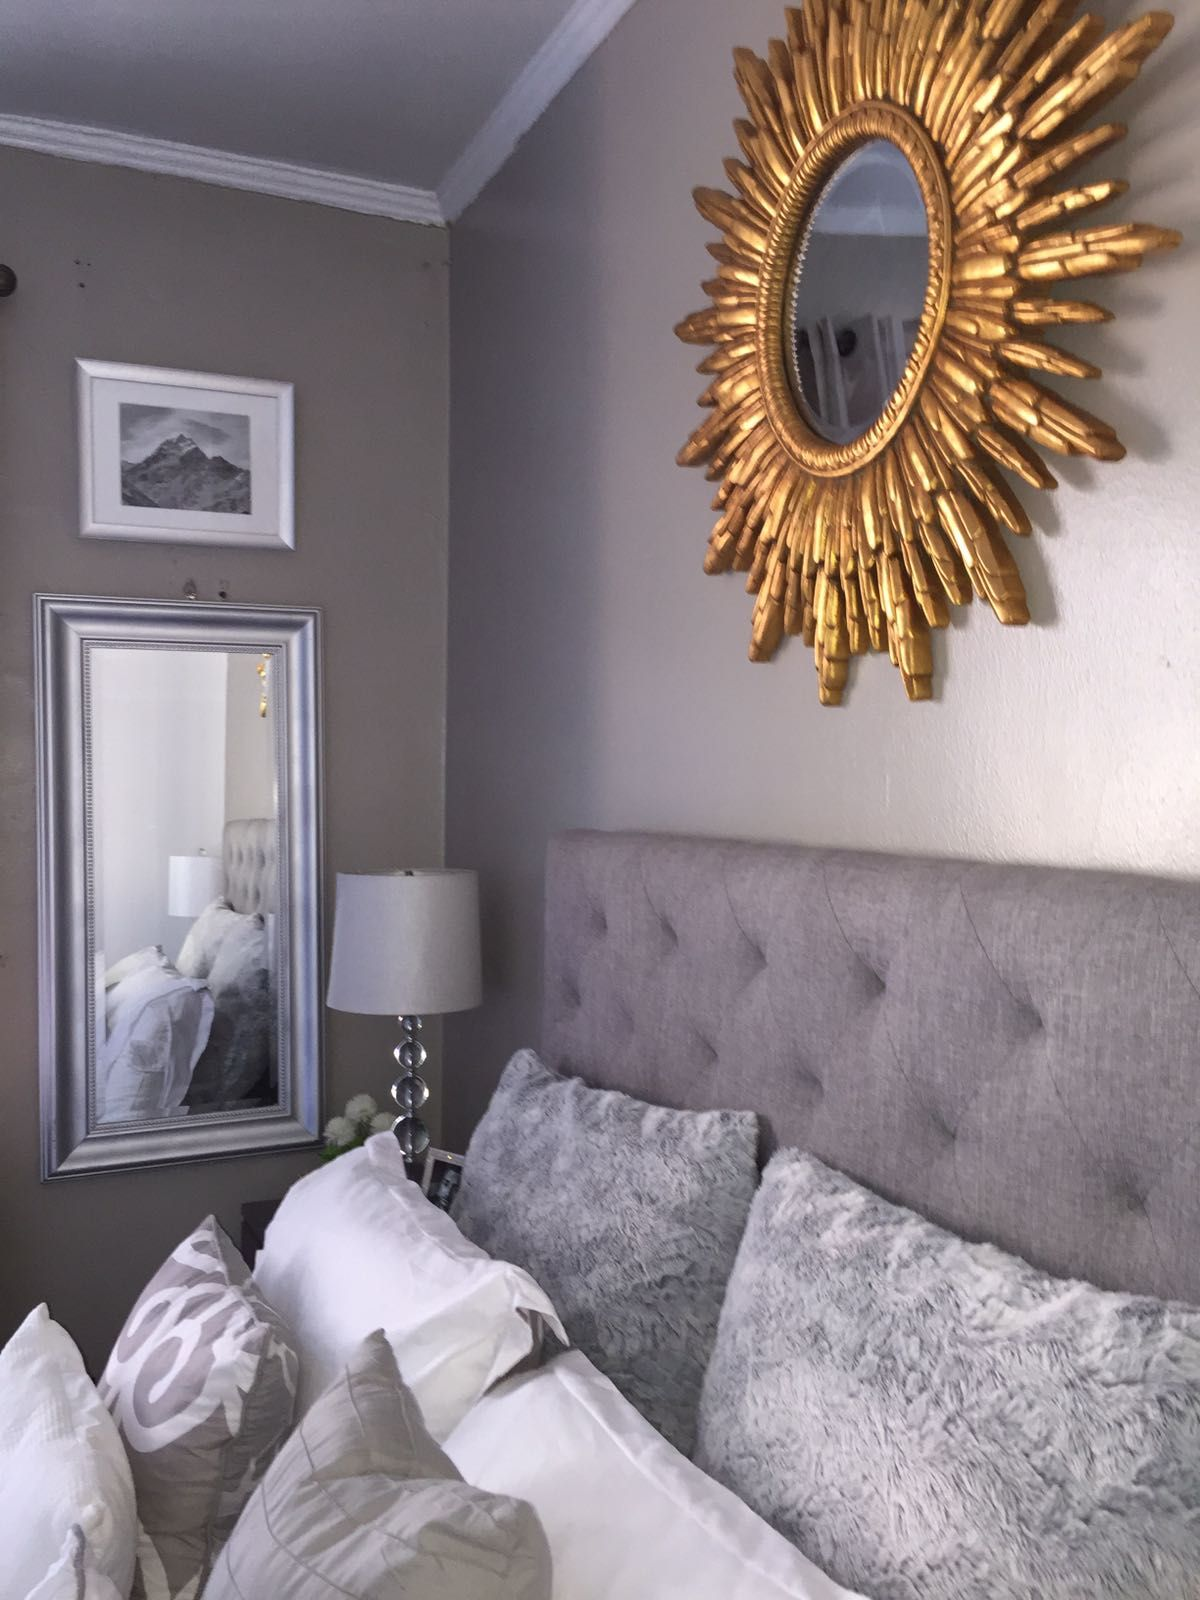 Grey and gold bedroom decoration decor headboard sunburst for Modern antique decor